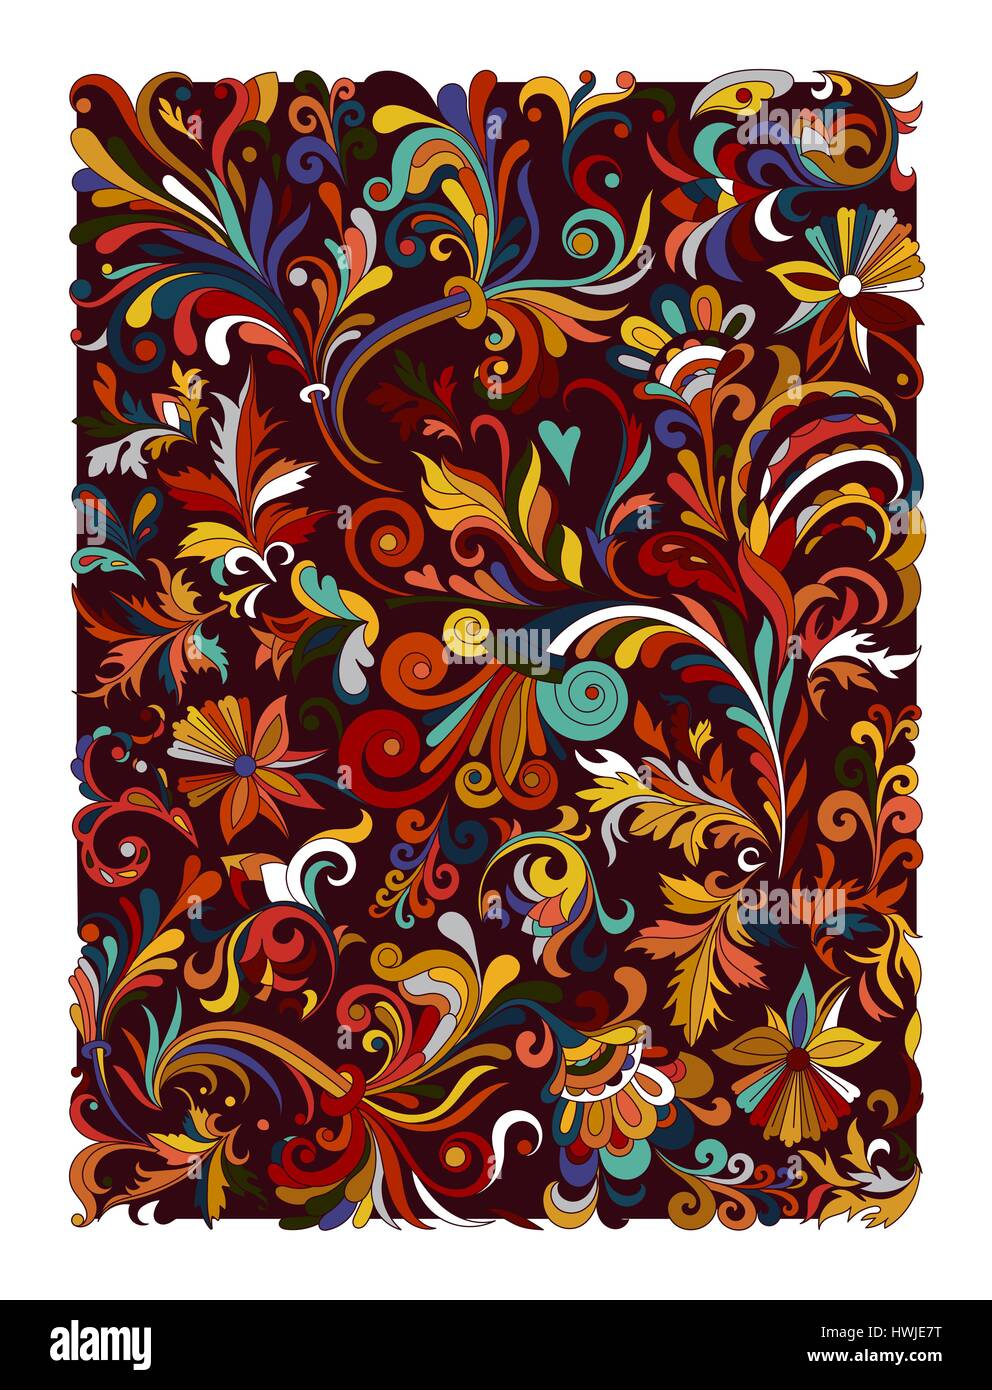 312d70be Ethnic colored floral zentangle, doodle background pattern rectangle in  vector. Henna paisley mehndi doodles design. Good for cover design. Hot  easter